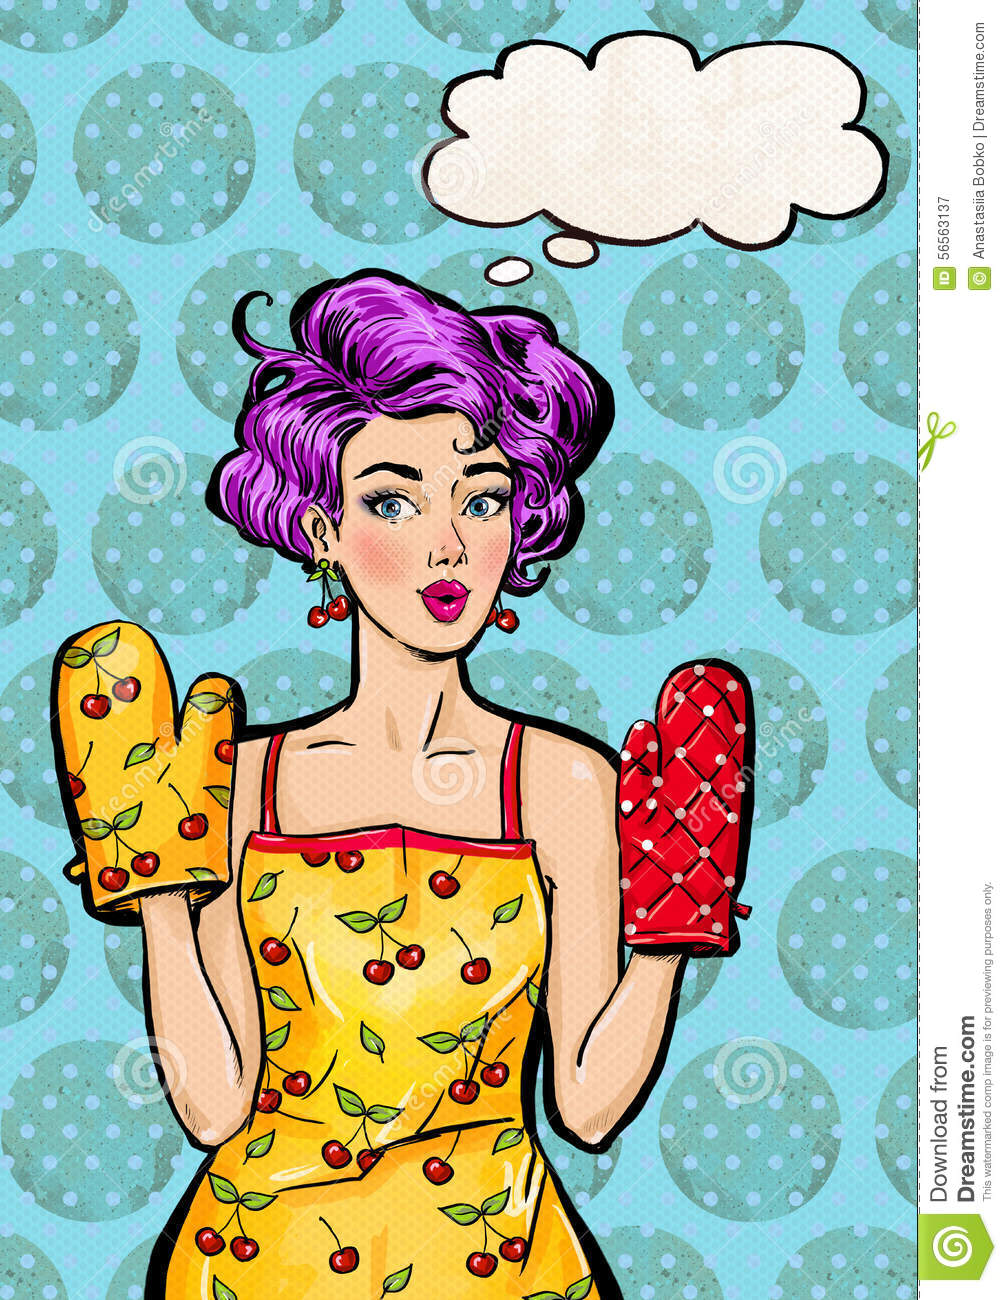 Pop Art Girl In Apron And Oven Mitts With The Speech